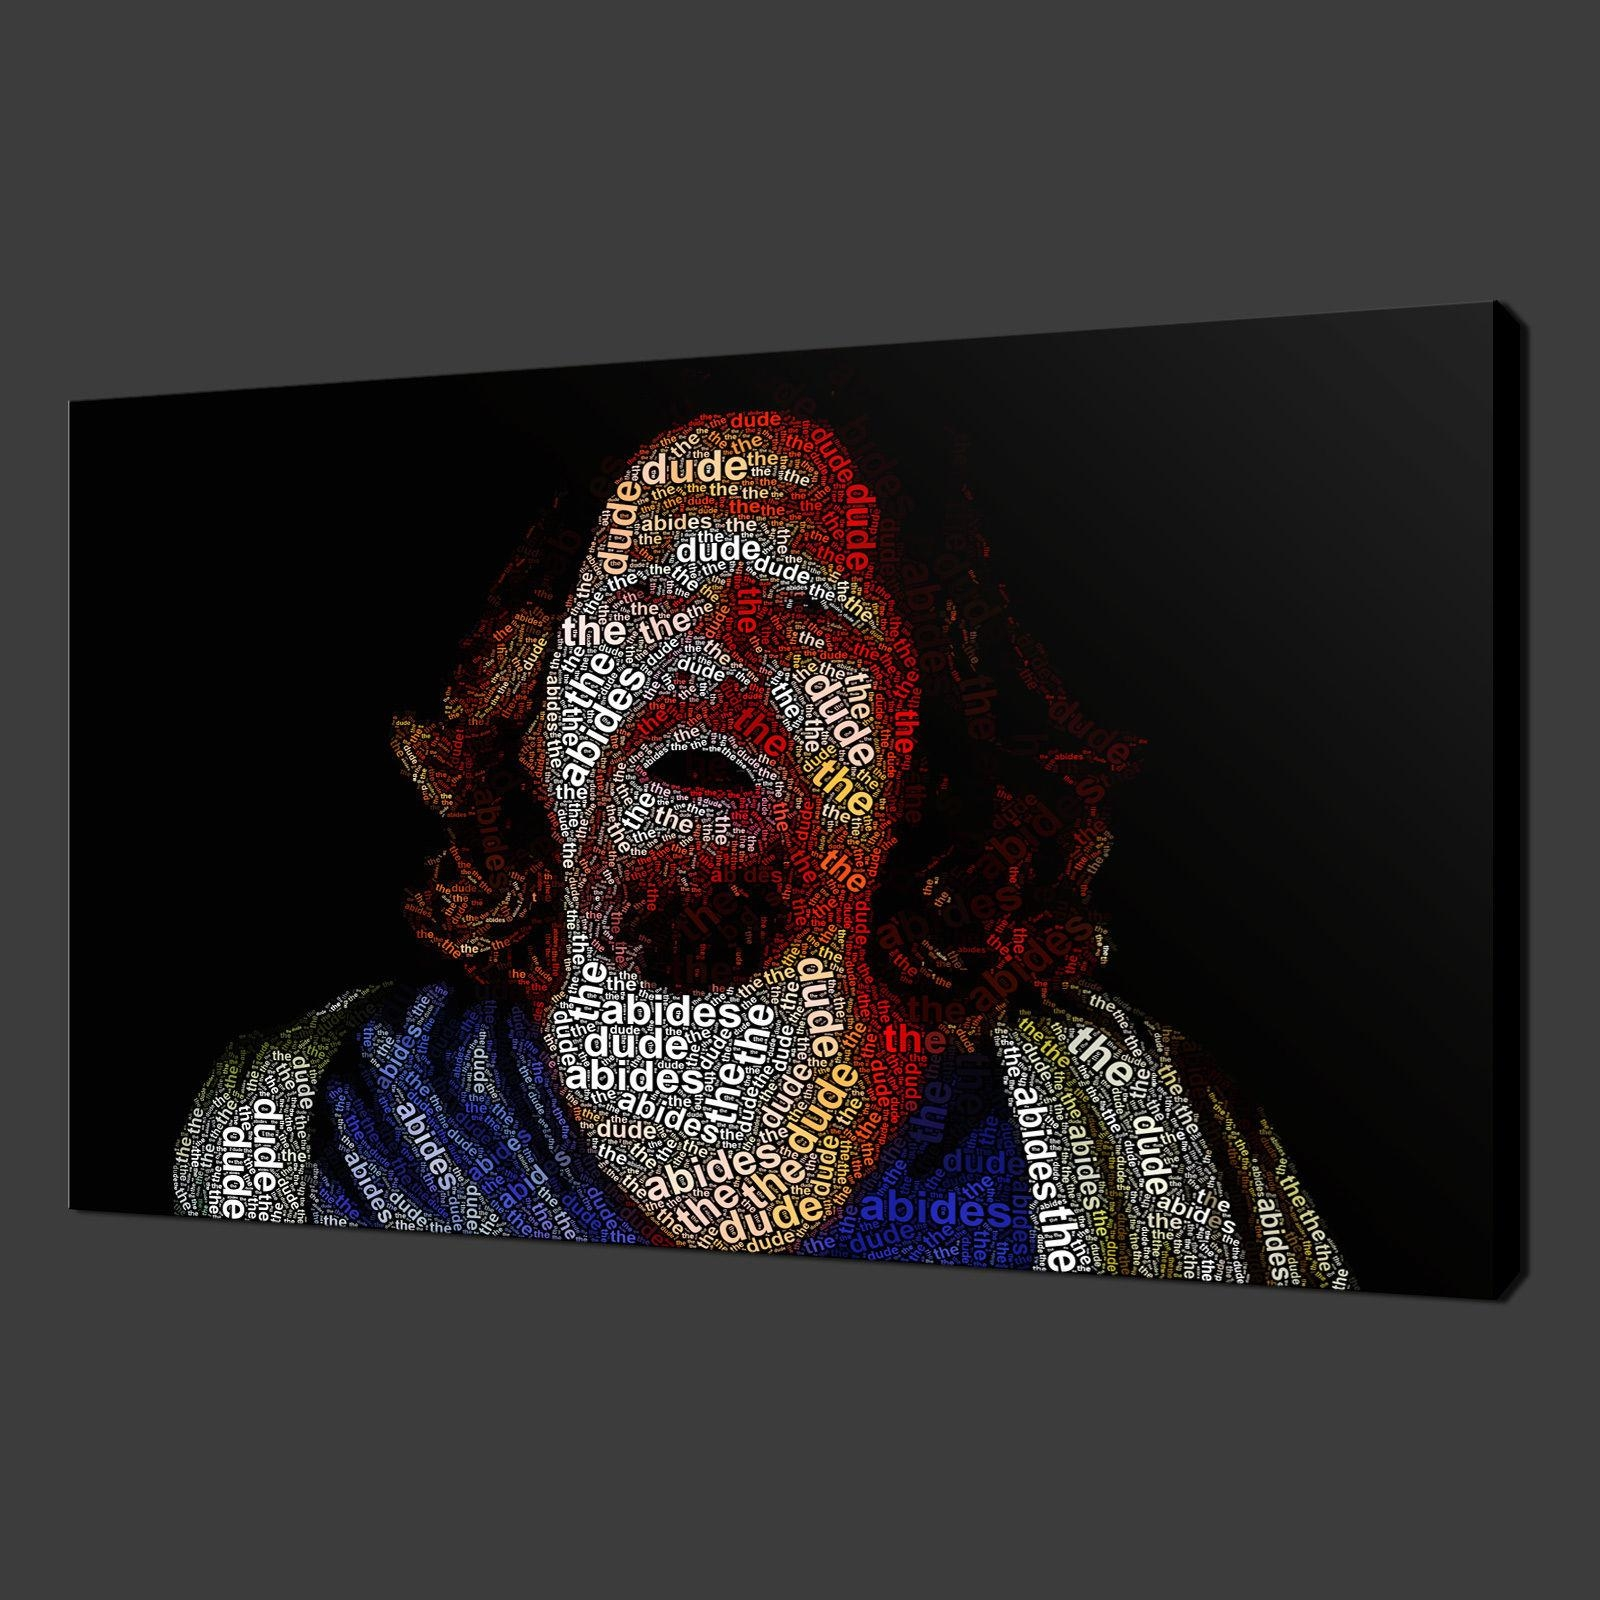 Big Lebowski Film Typography Canvas Wall Art Pictures Prints 20 Inside Typography Canvas Wall Art (Image 9 of 20)